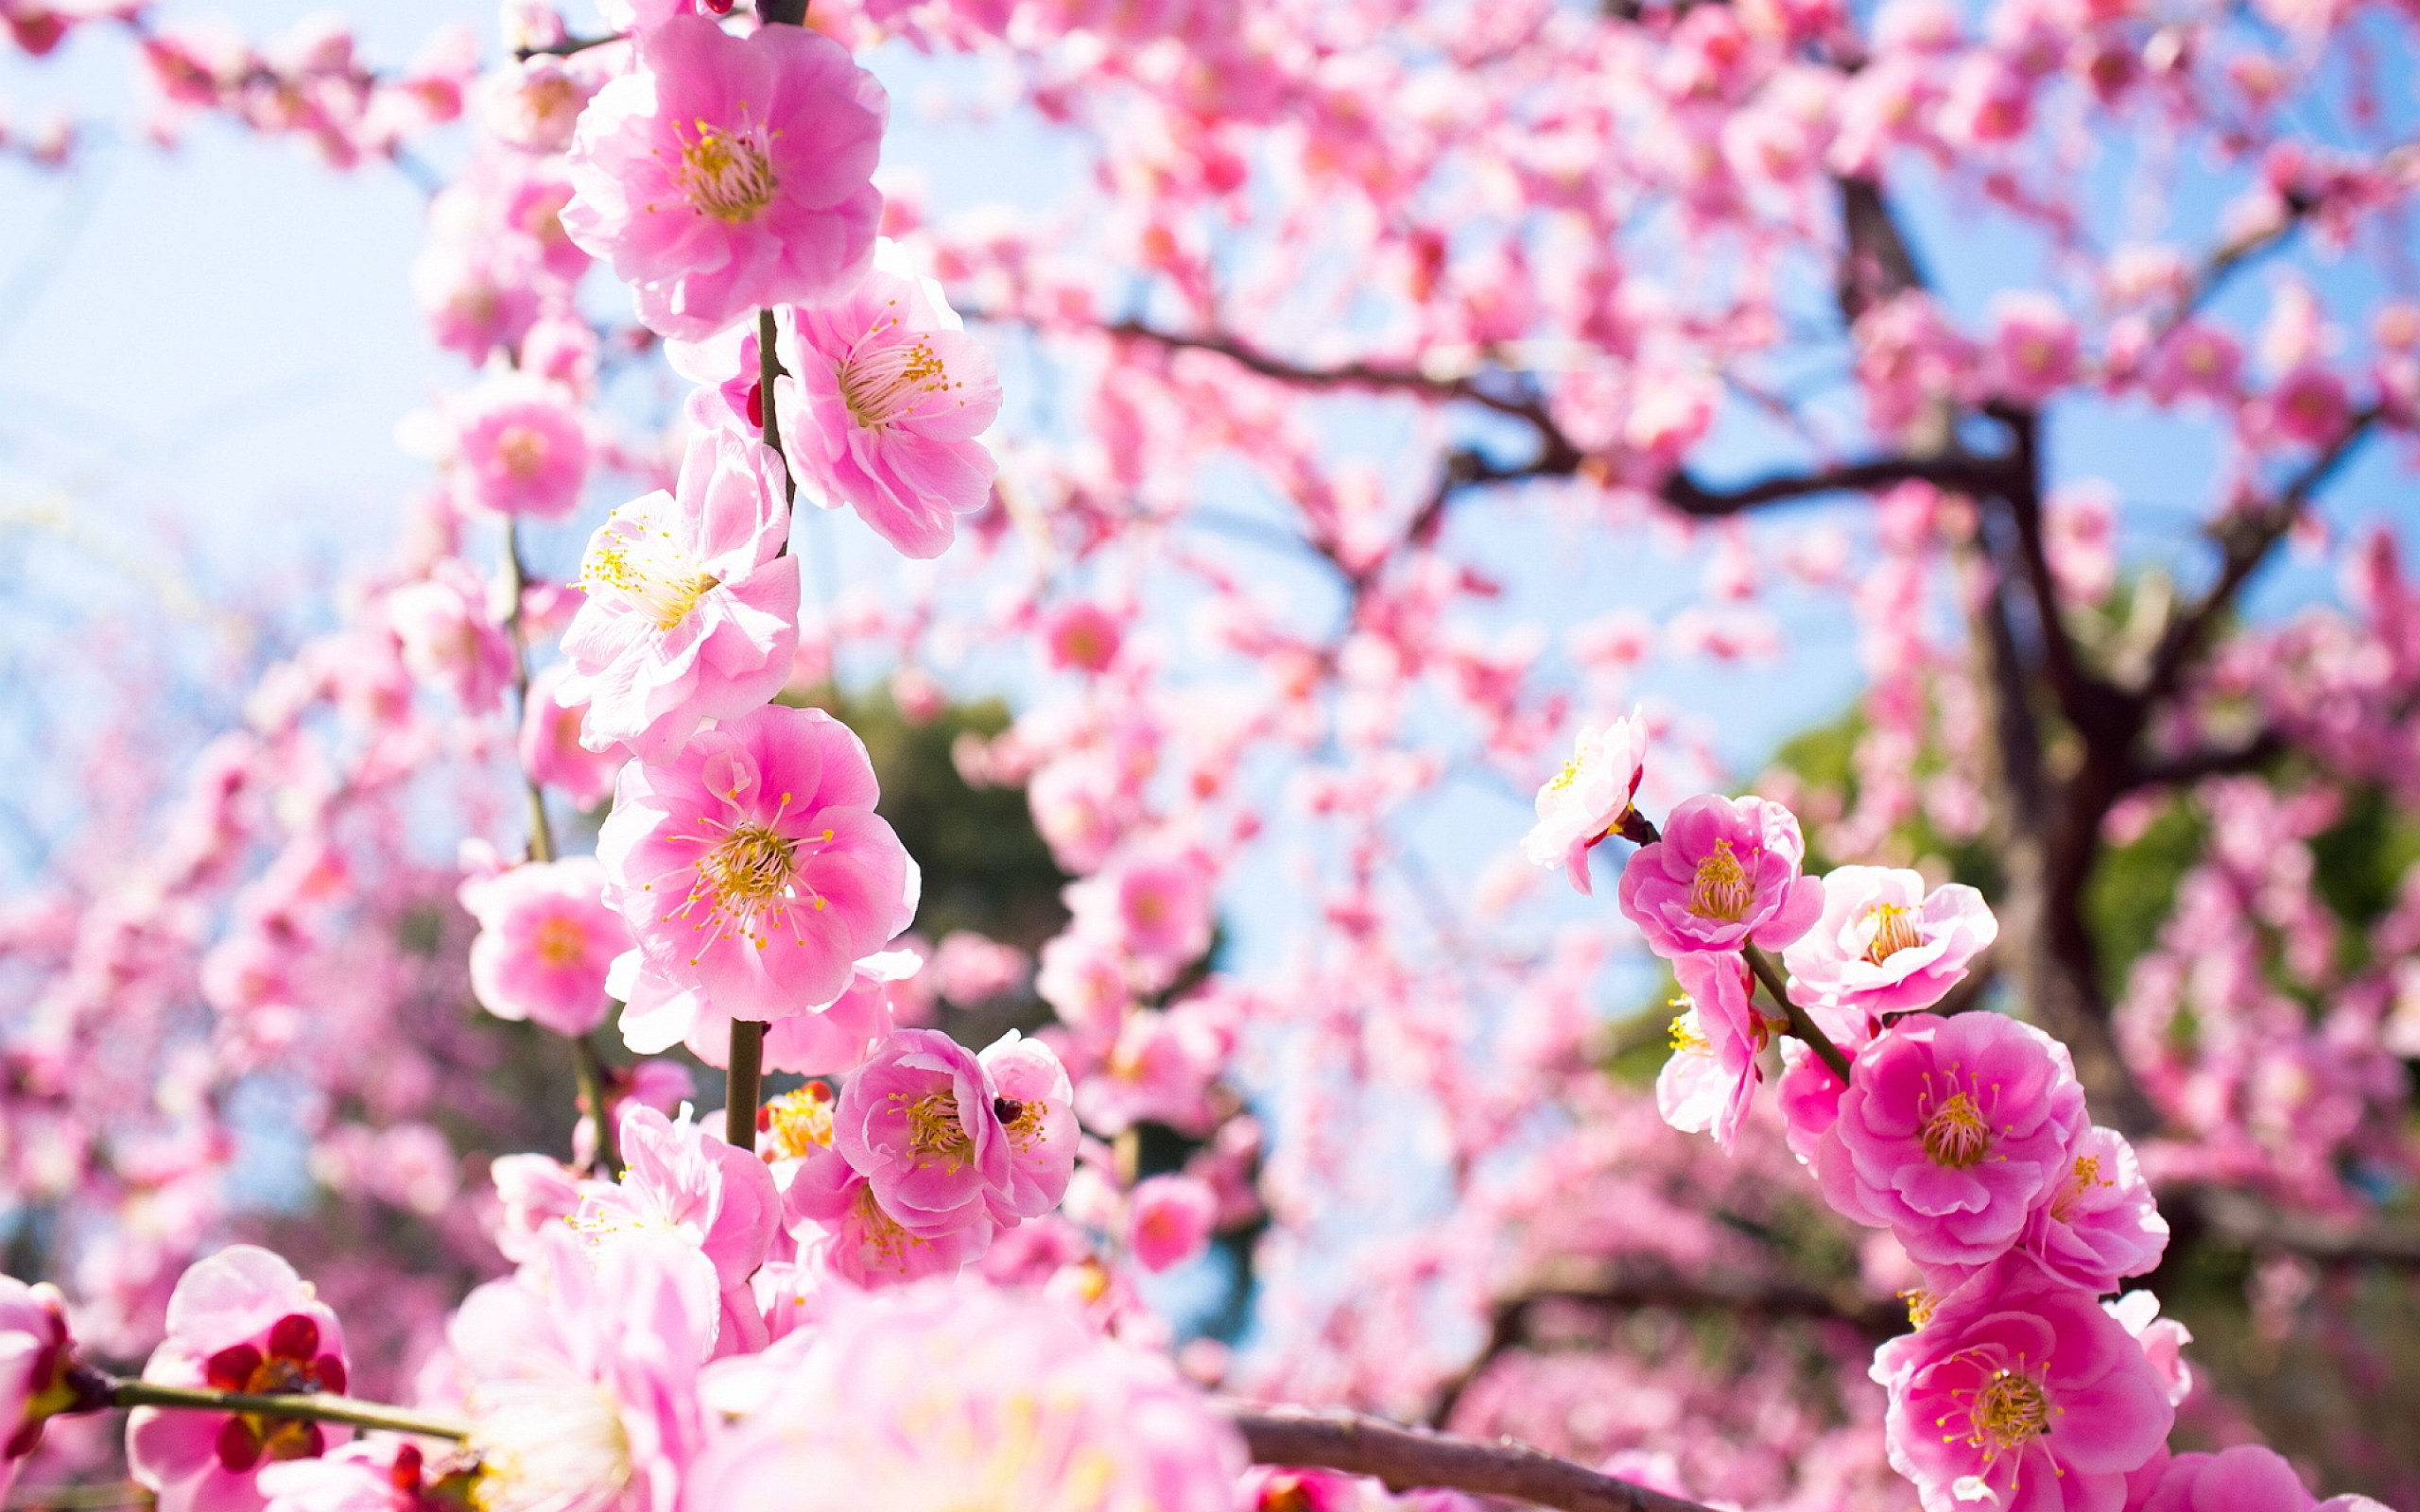 Japanese Cherry Blossom Wallpaper 1920x1080 Wallpapersafari